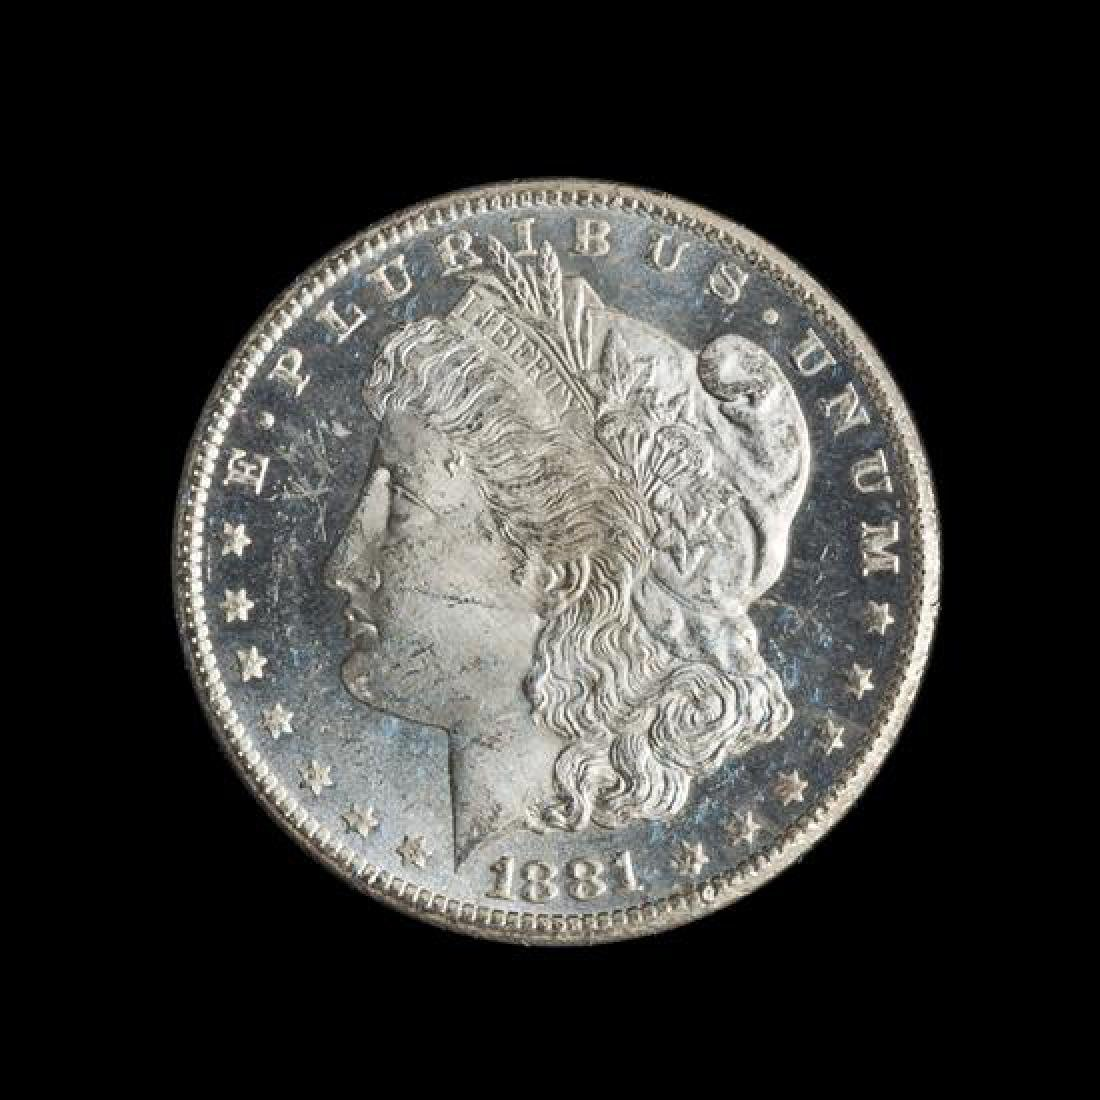 A United States 1881-CC GSA: Morgan Silver Dollar Coin